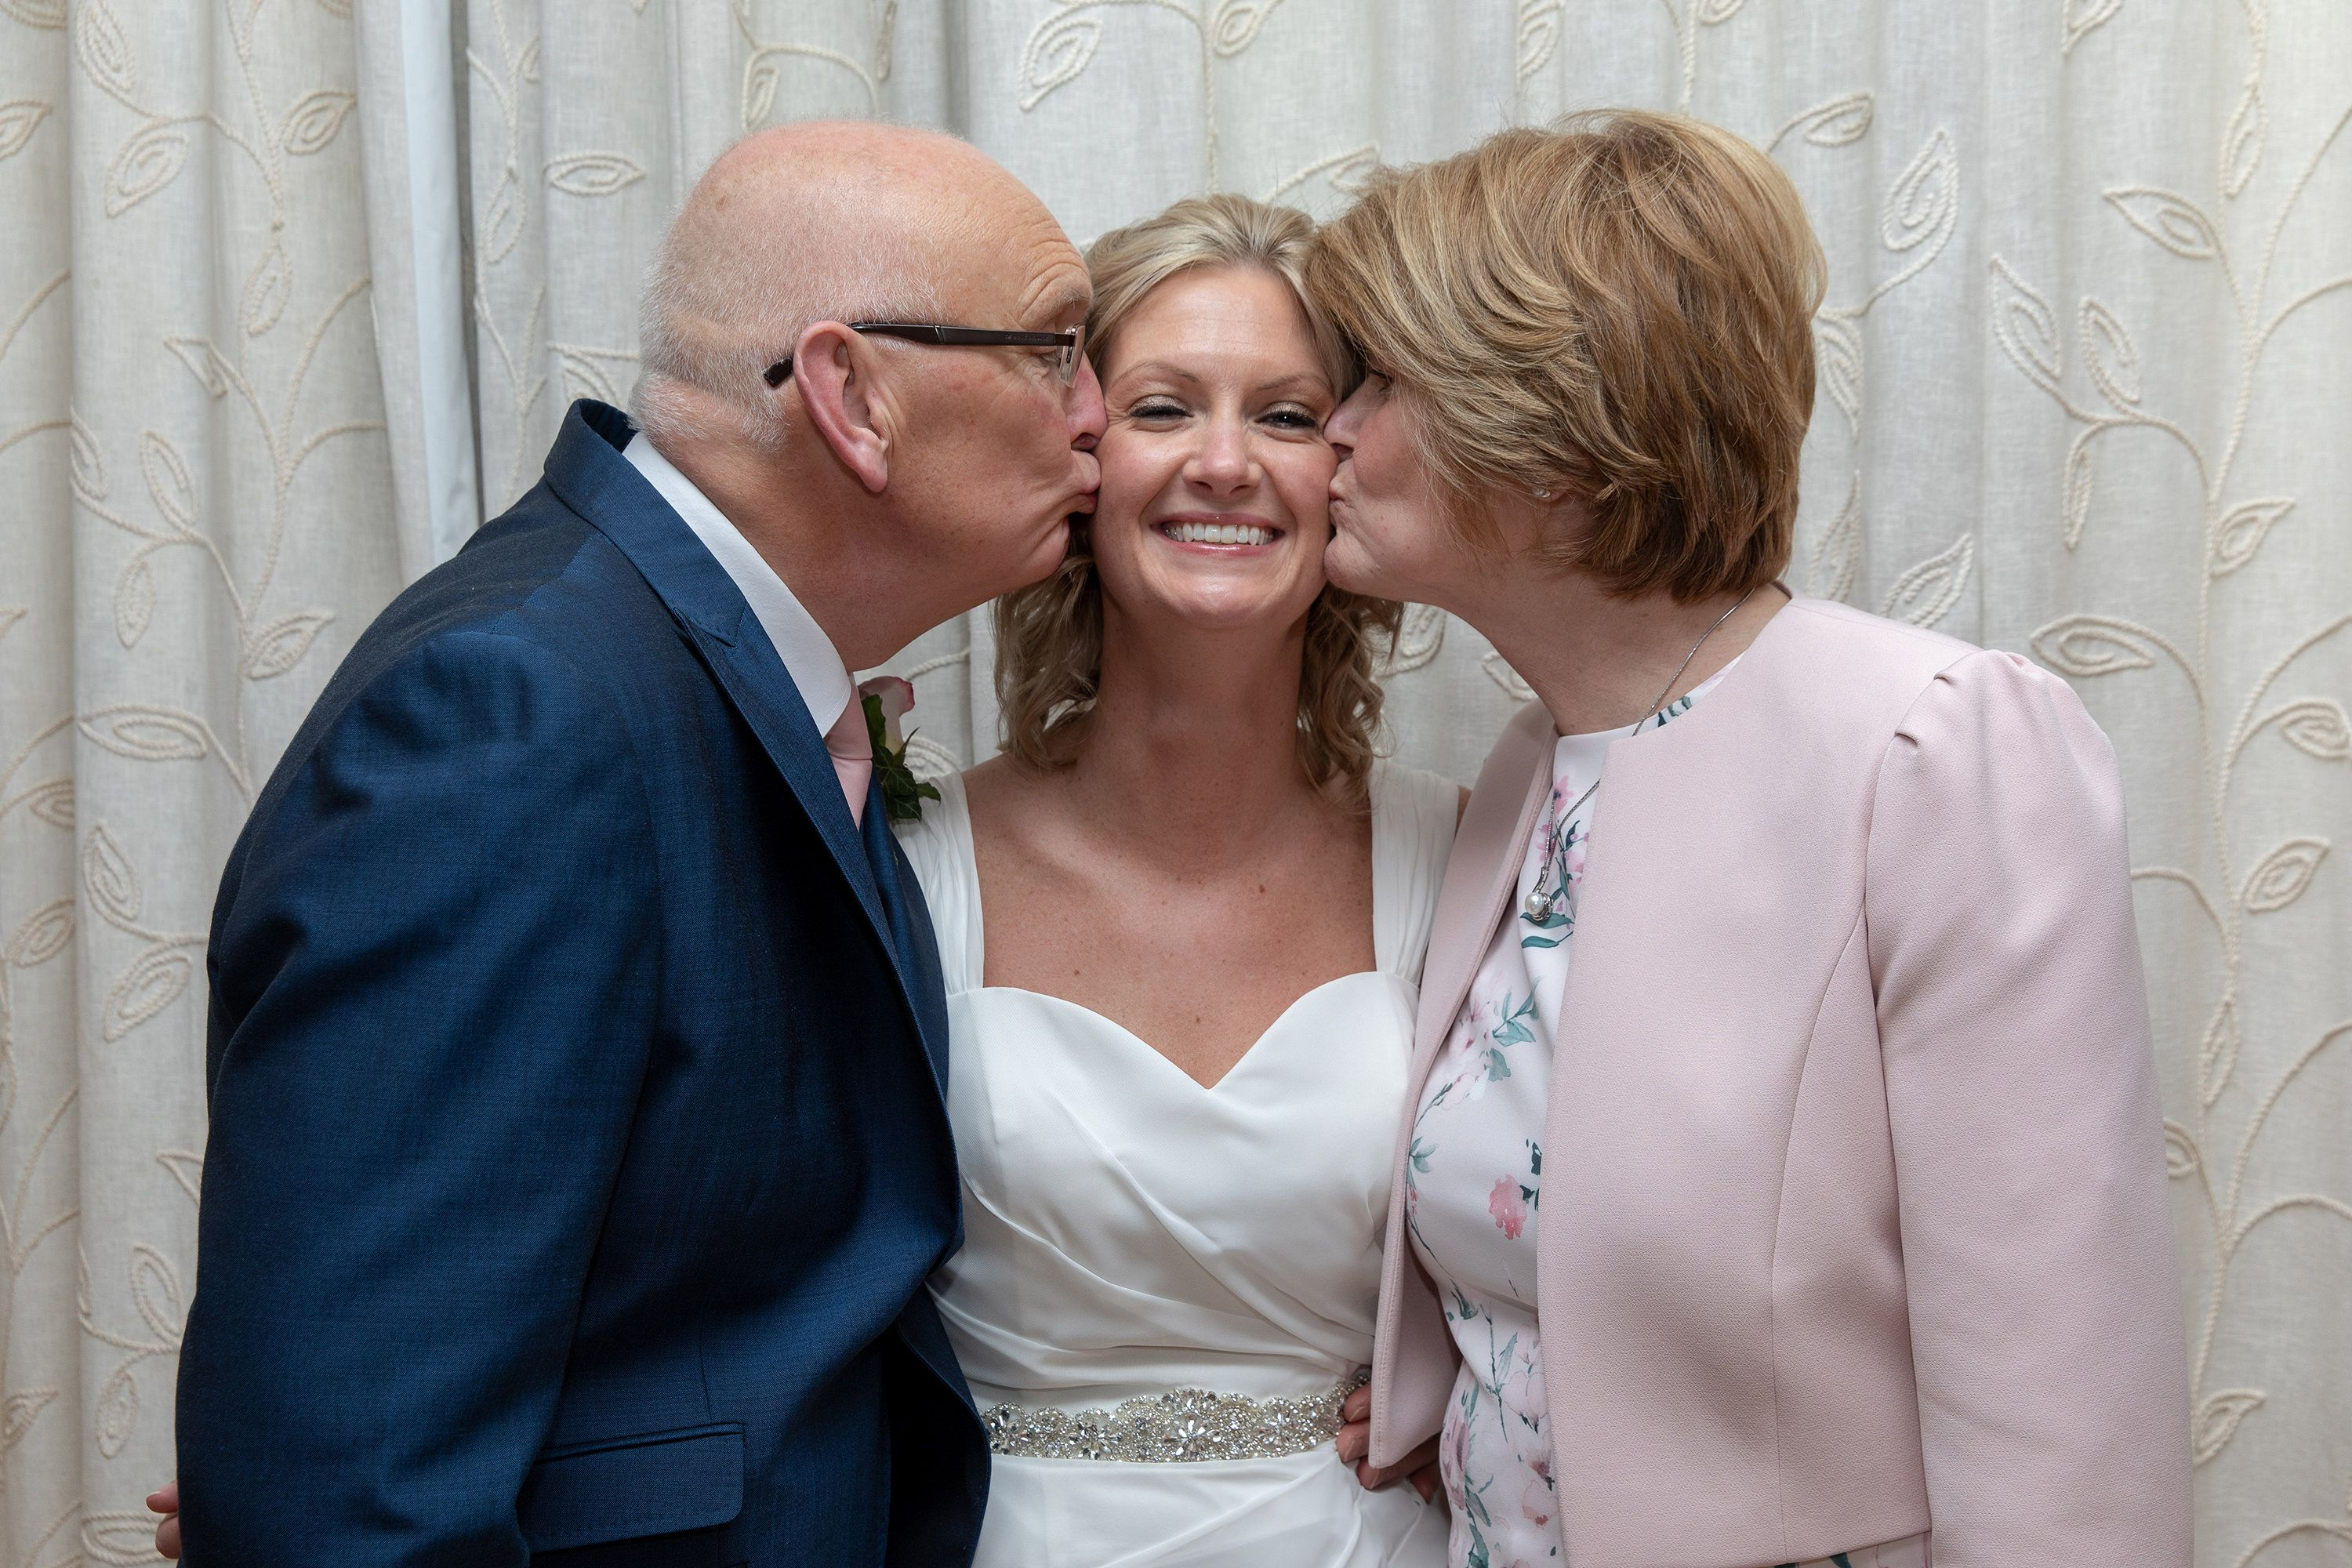 mother and father of the bride and groom give her a kiss